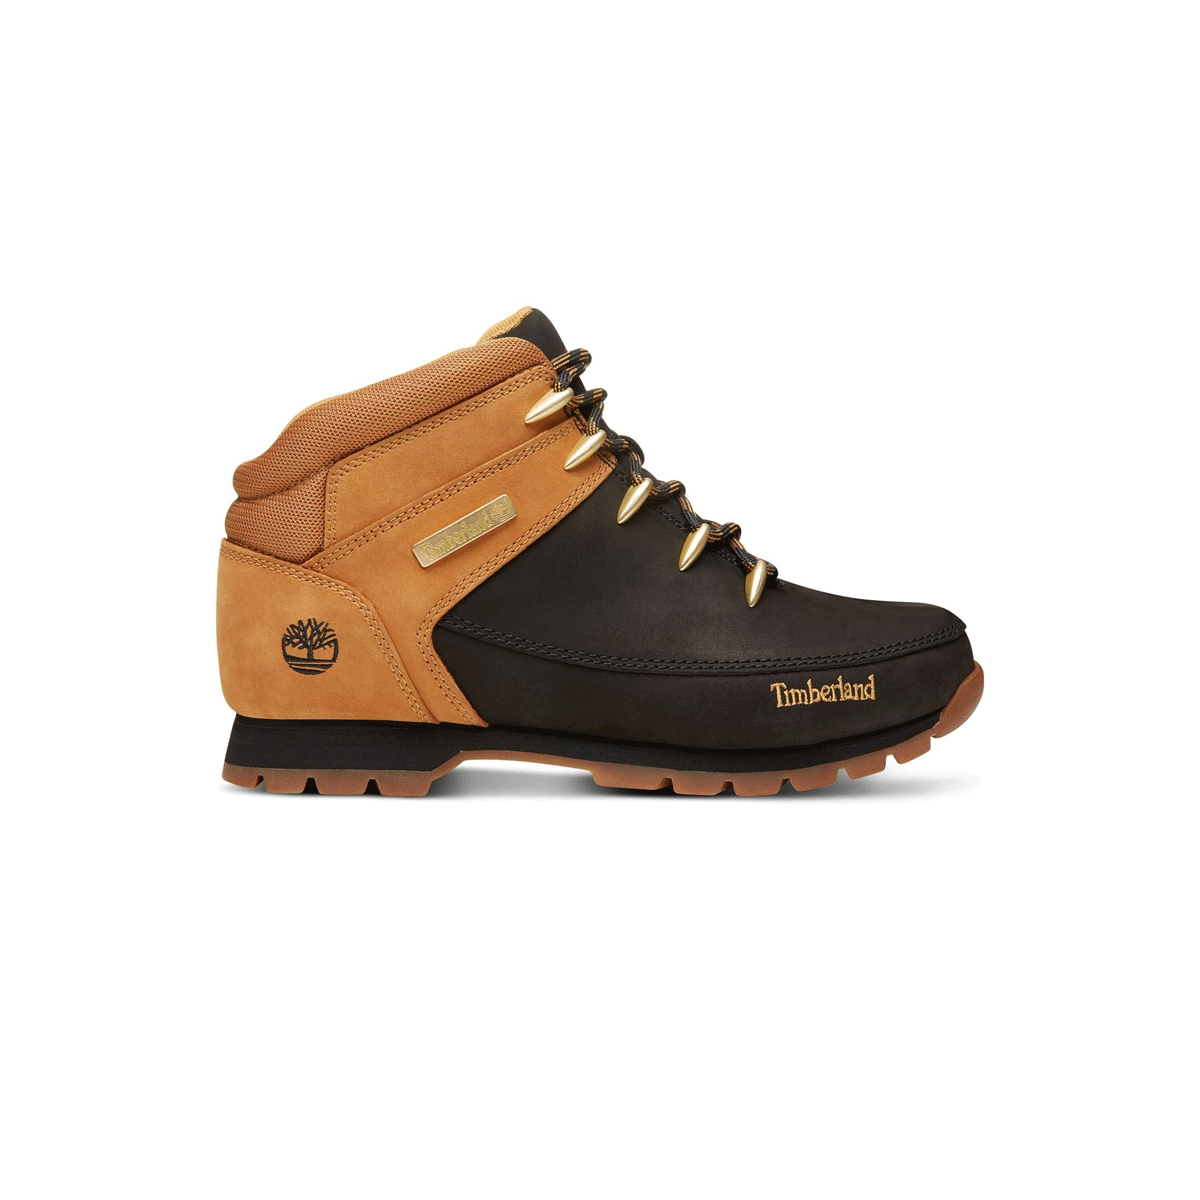 2870907212 Noir Euro Camel Timberland A1k7t Montantes Homme Sprint Chaussures S4qYUtq